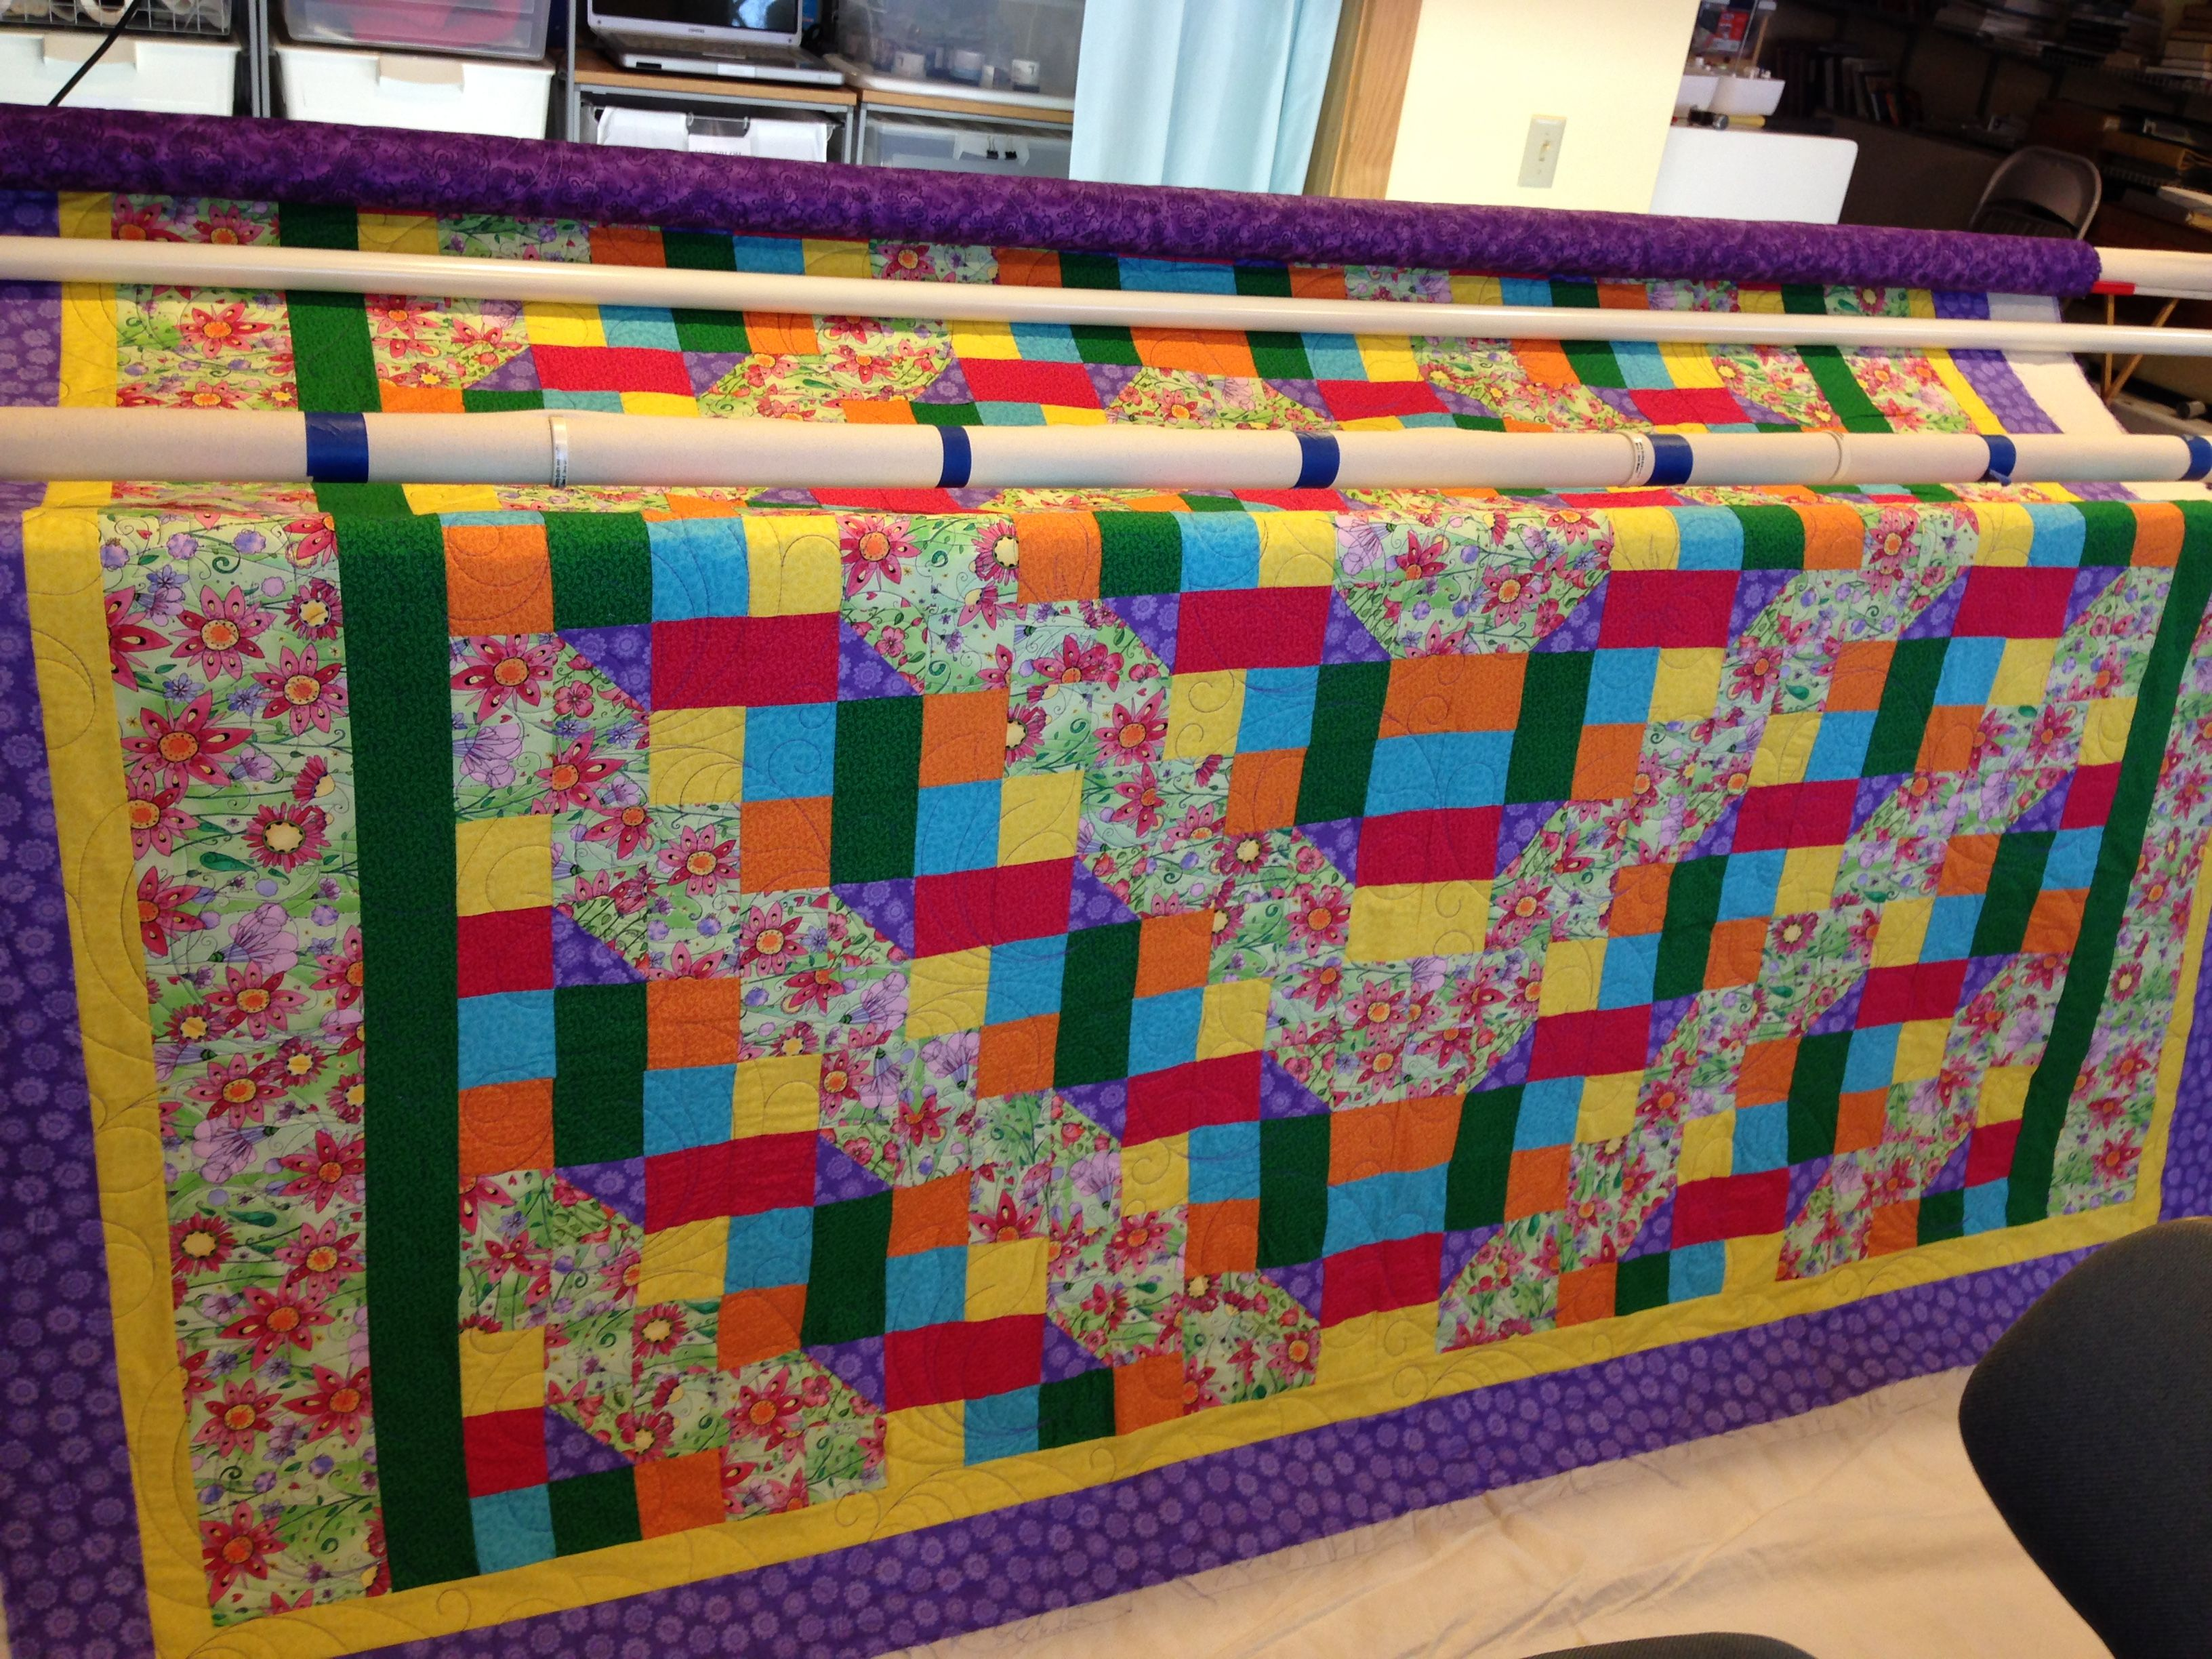 Garden Path design by Anita Hollock made with a limited number of colors which changes the look of the whole quilt.  Made and quilted by Mrs. B and Institches2014!